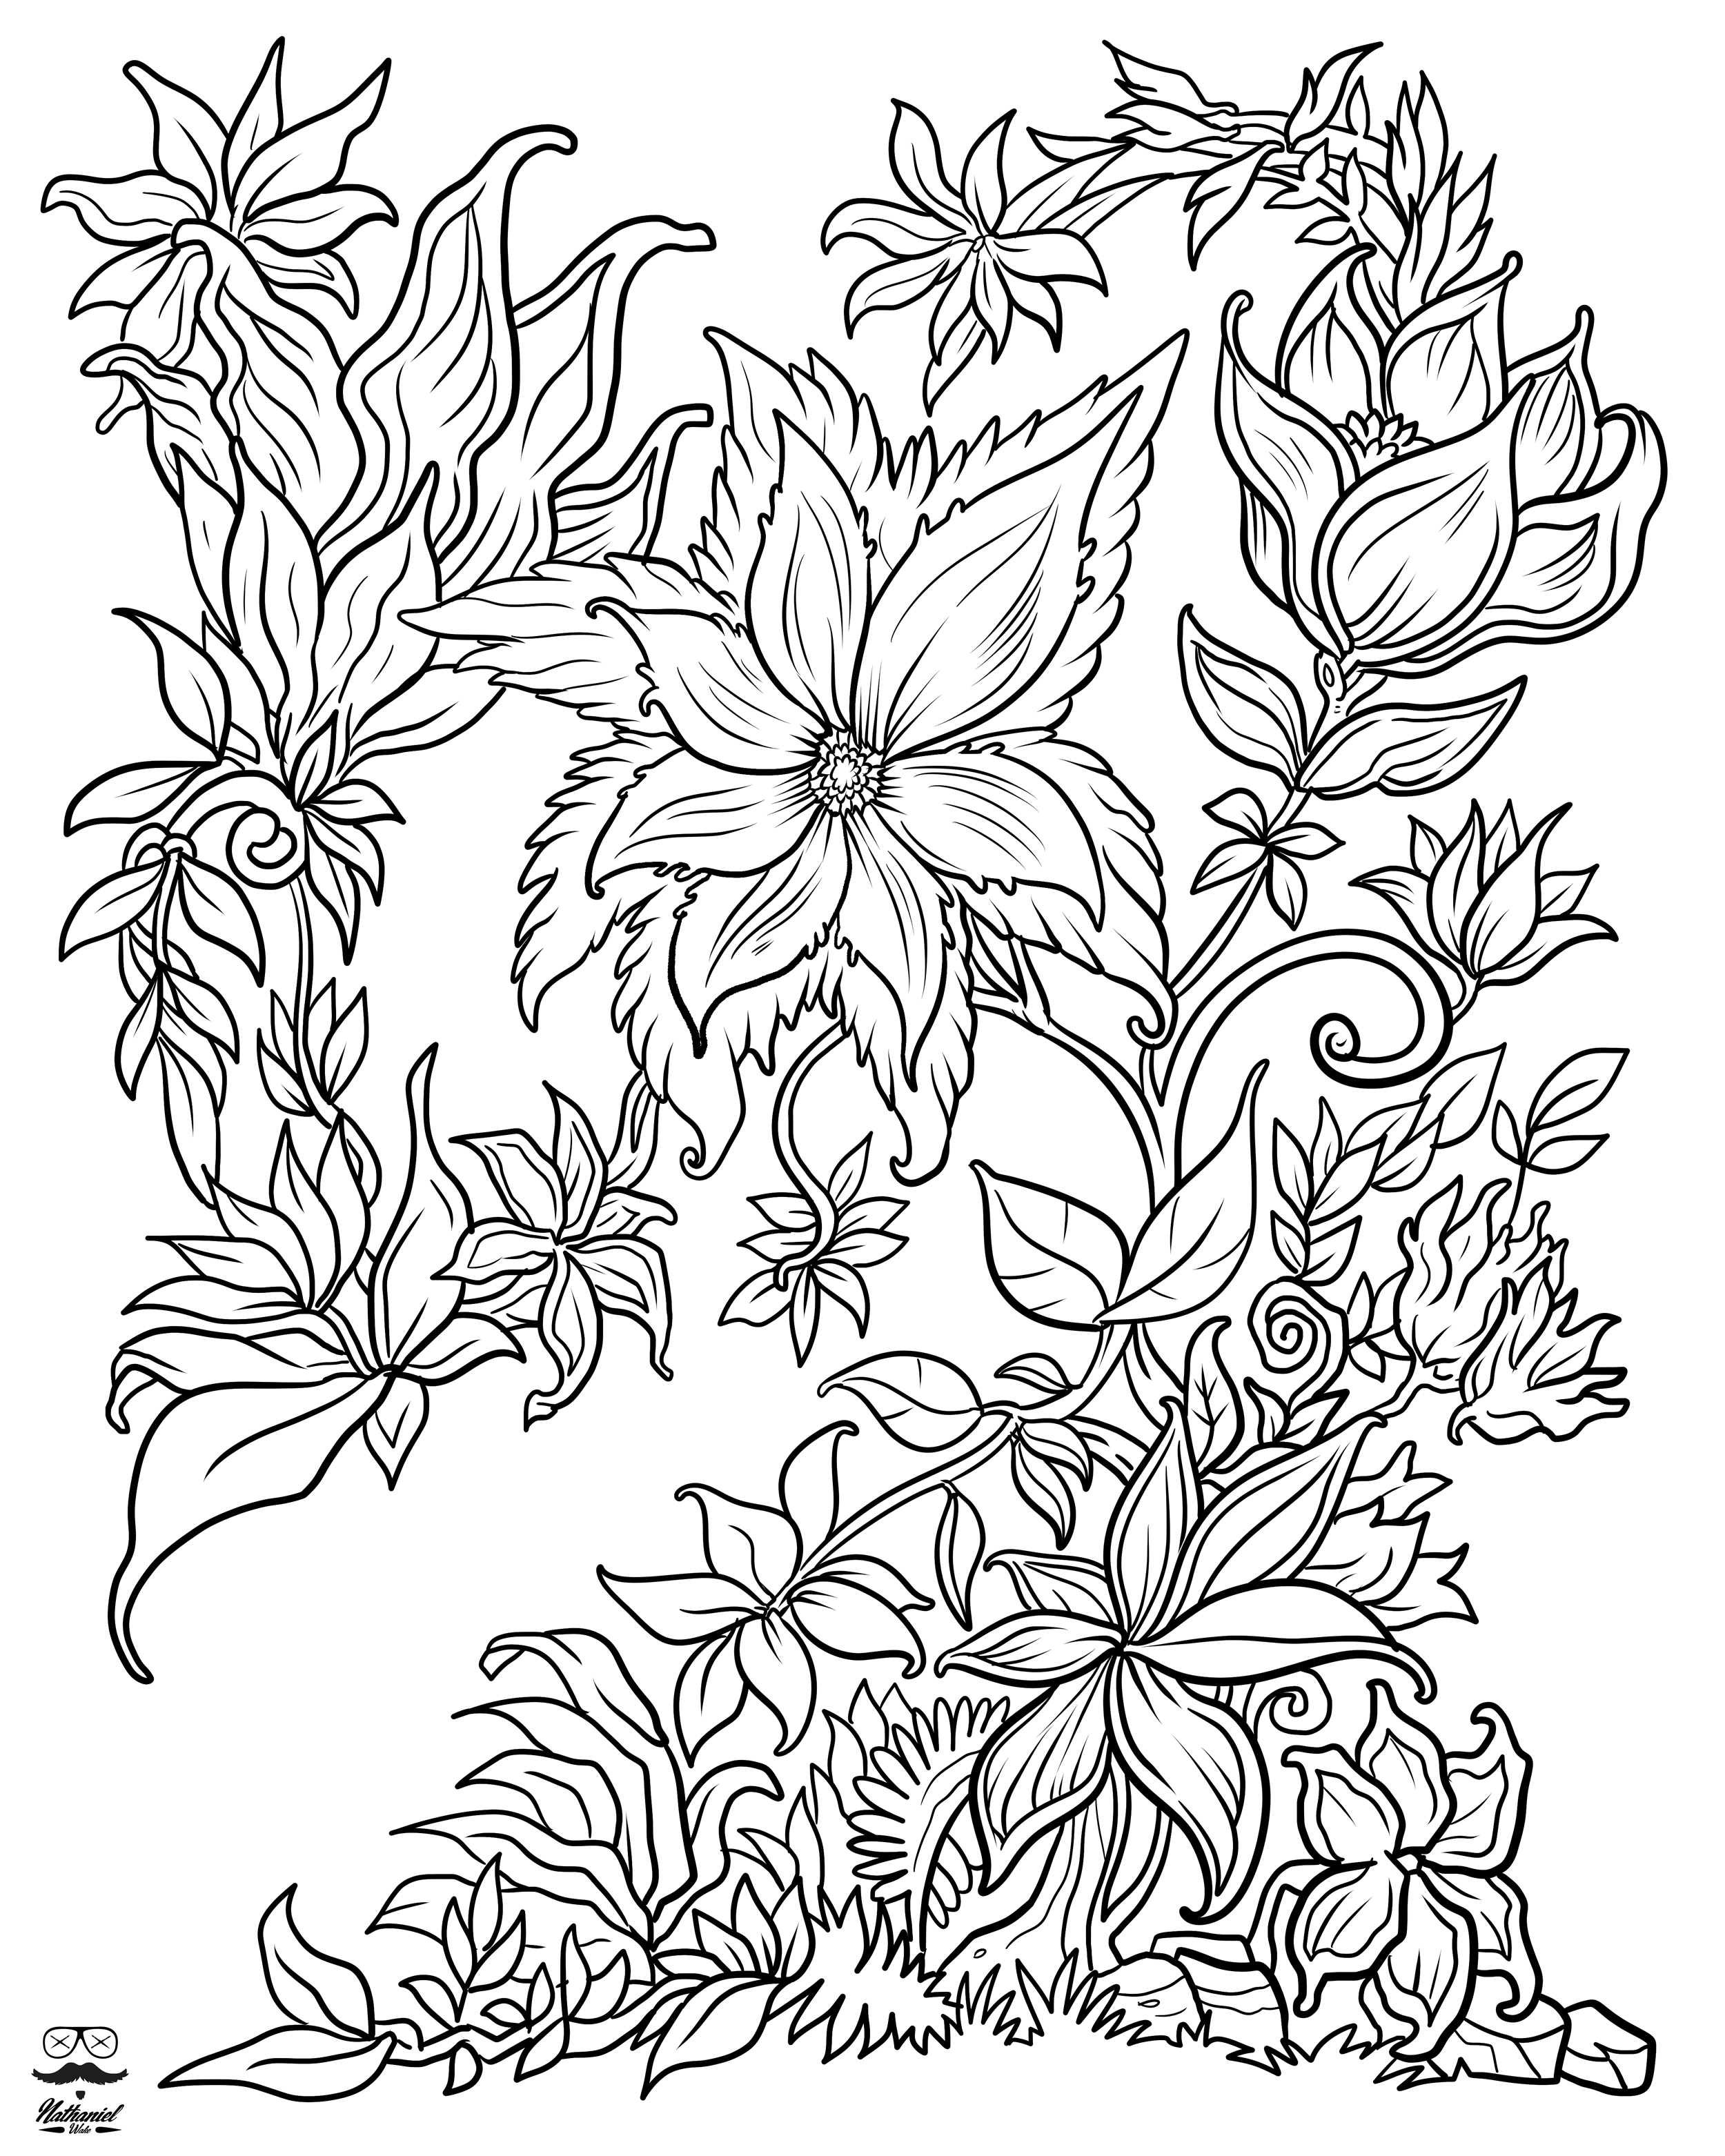 Adult Coloring Pages Garden at GetDrawings.com | Free for ...